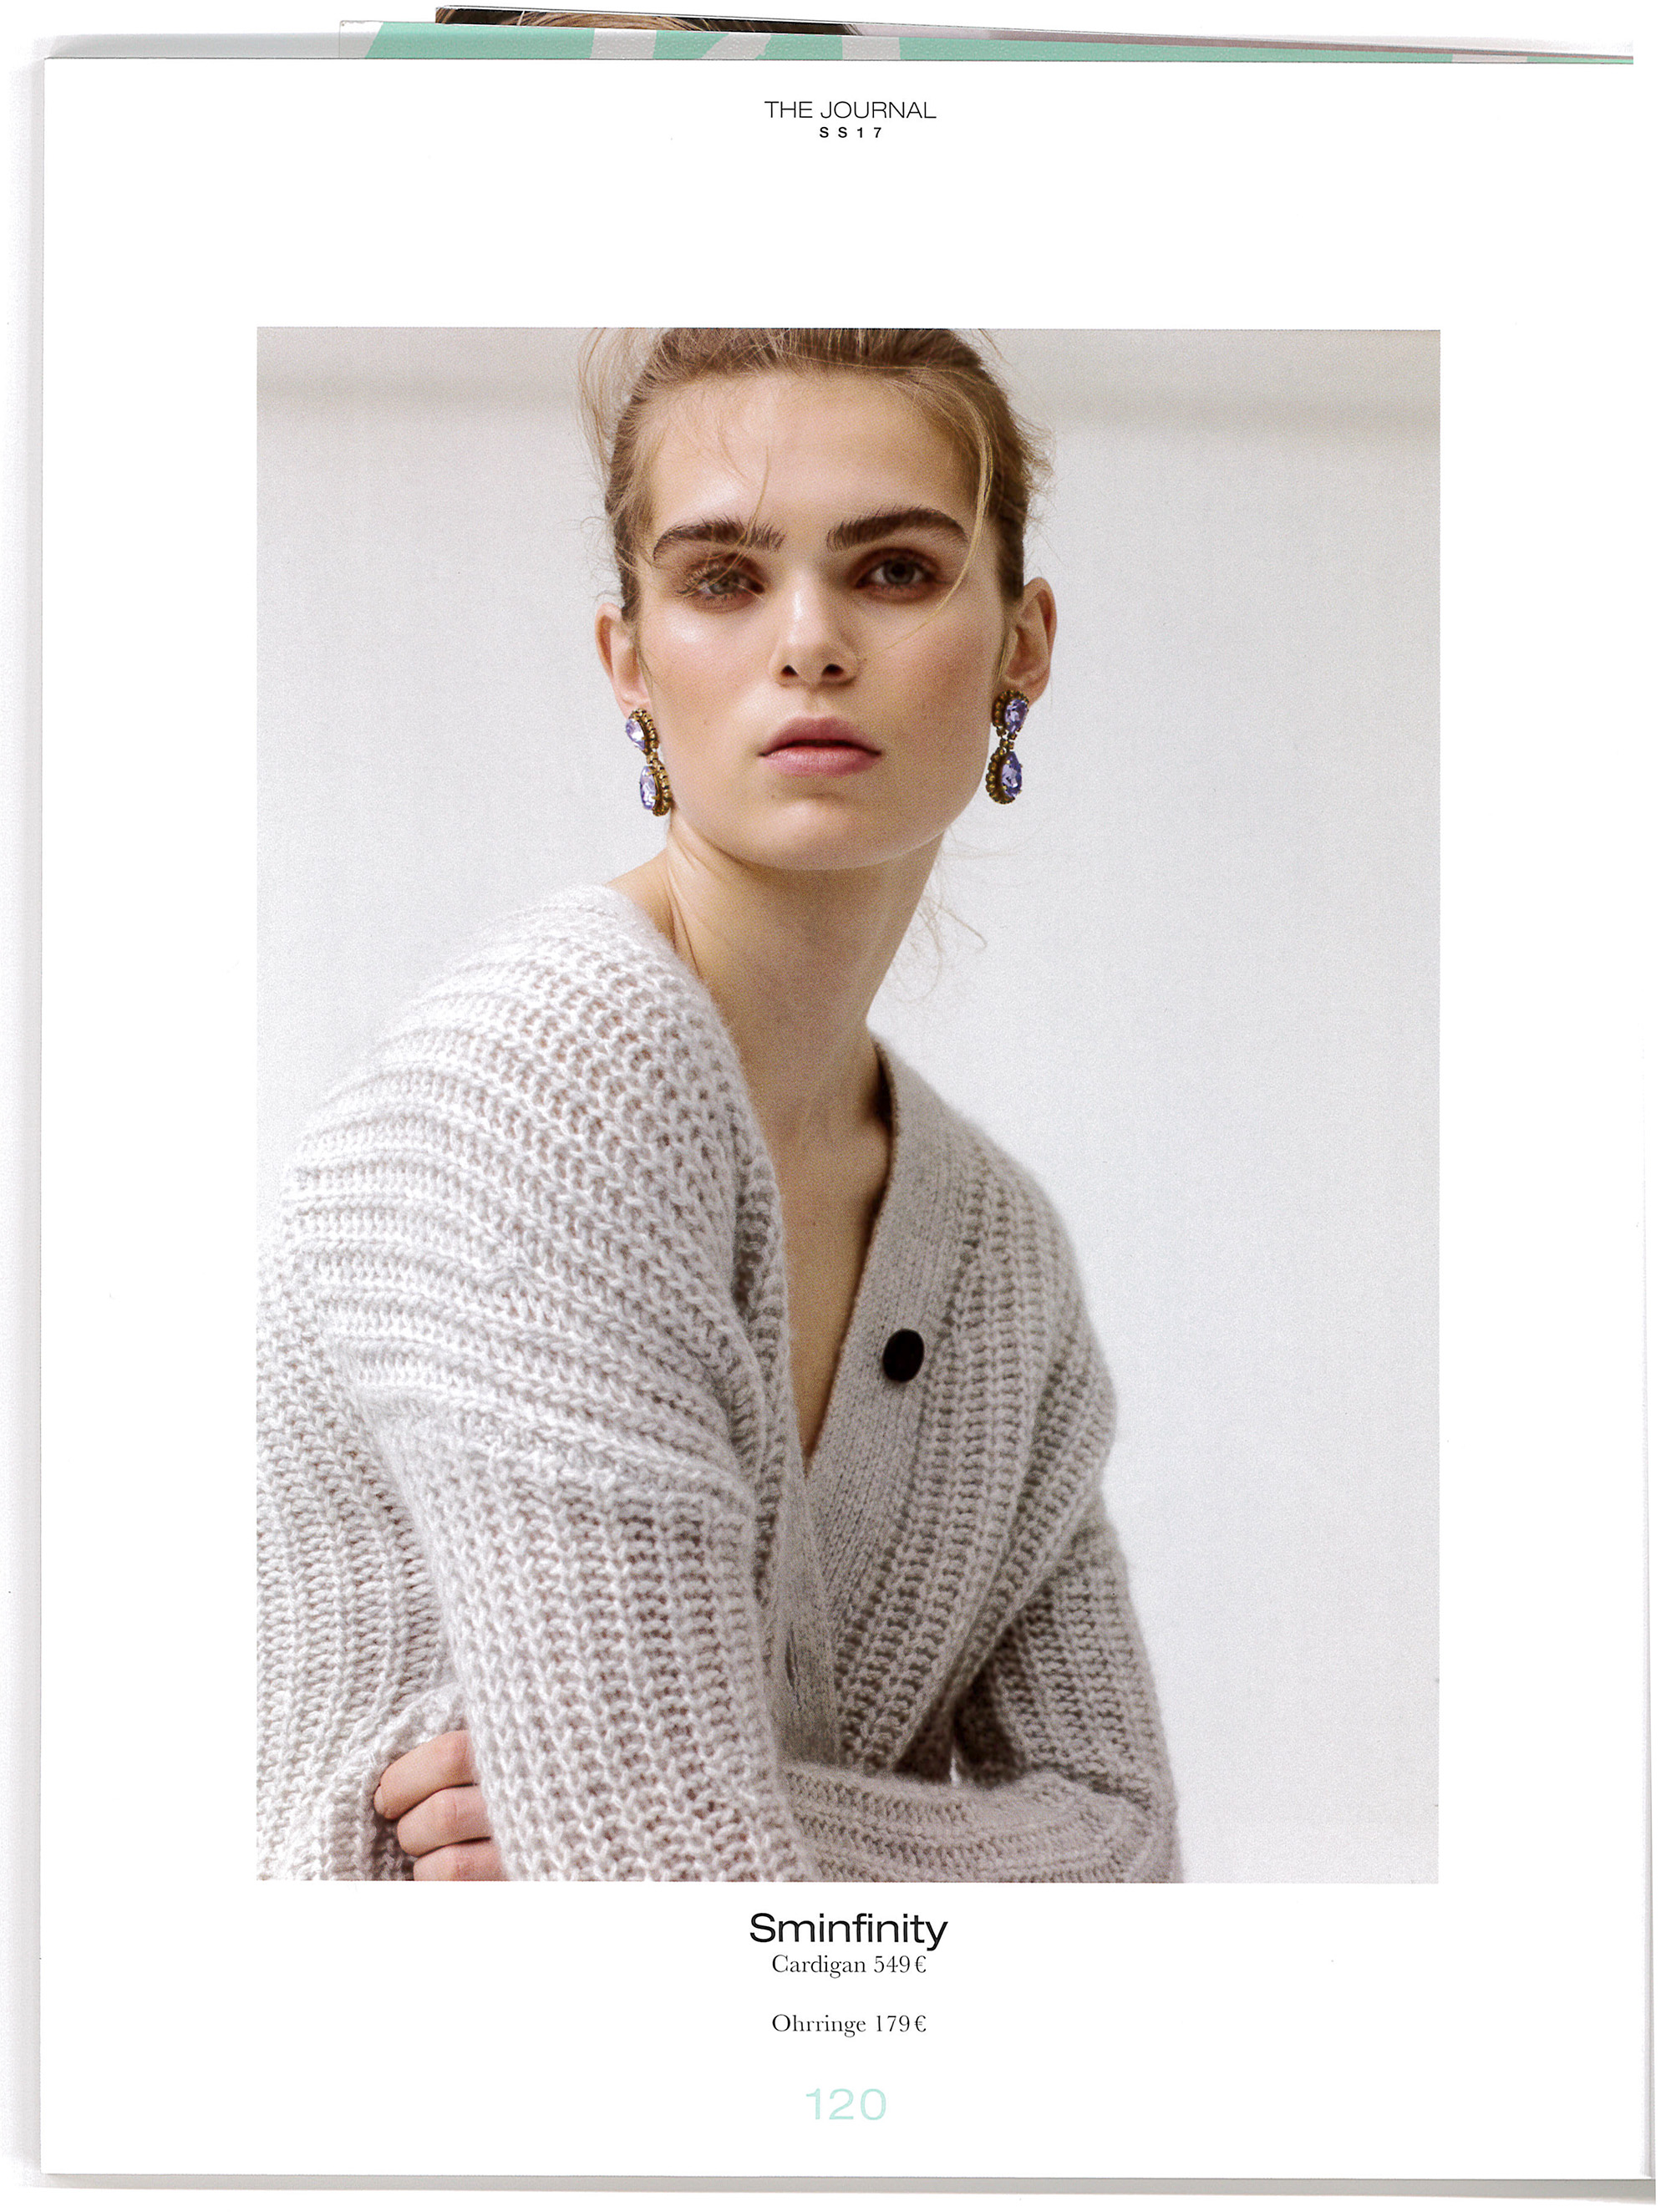 Sminfinity Cardigan 549€ featured in APROPOS, THE JOURNEL SS17